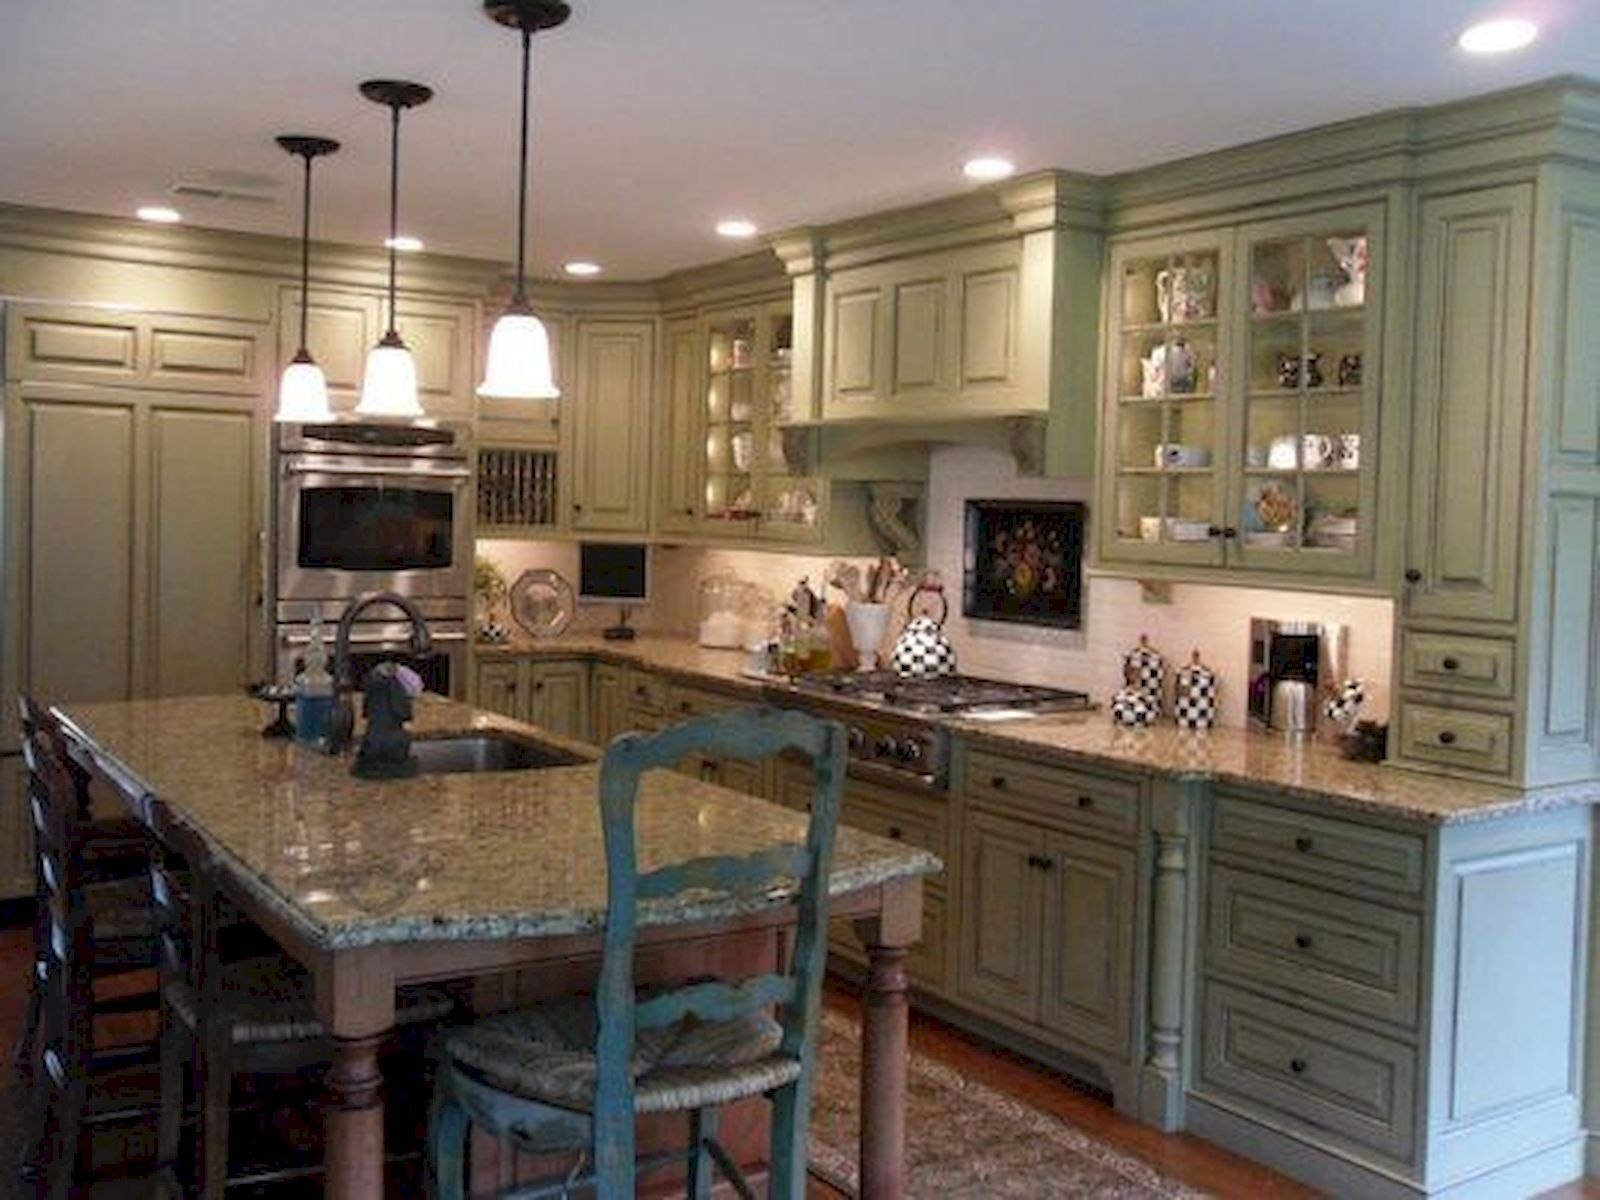 Awesome Sage Greens kitchen Cabinets (26 | Kitchen ...